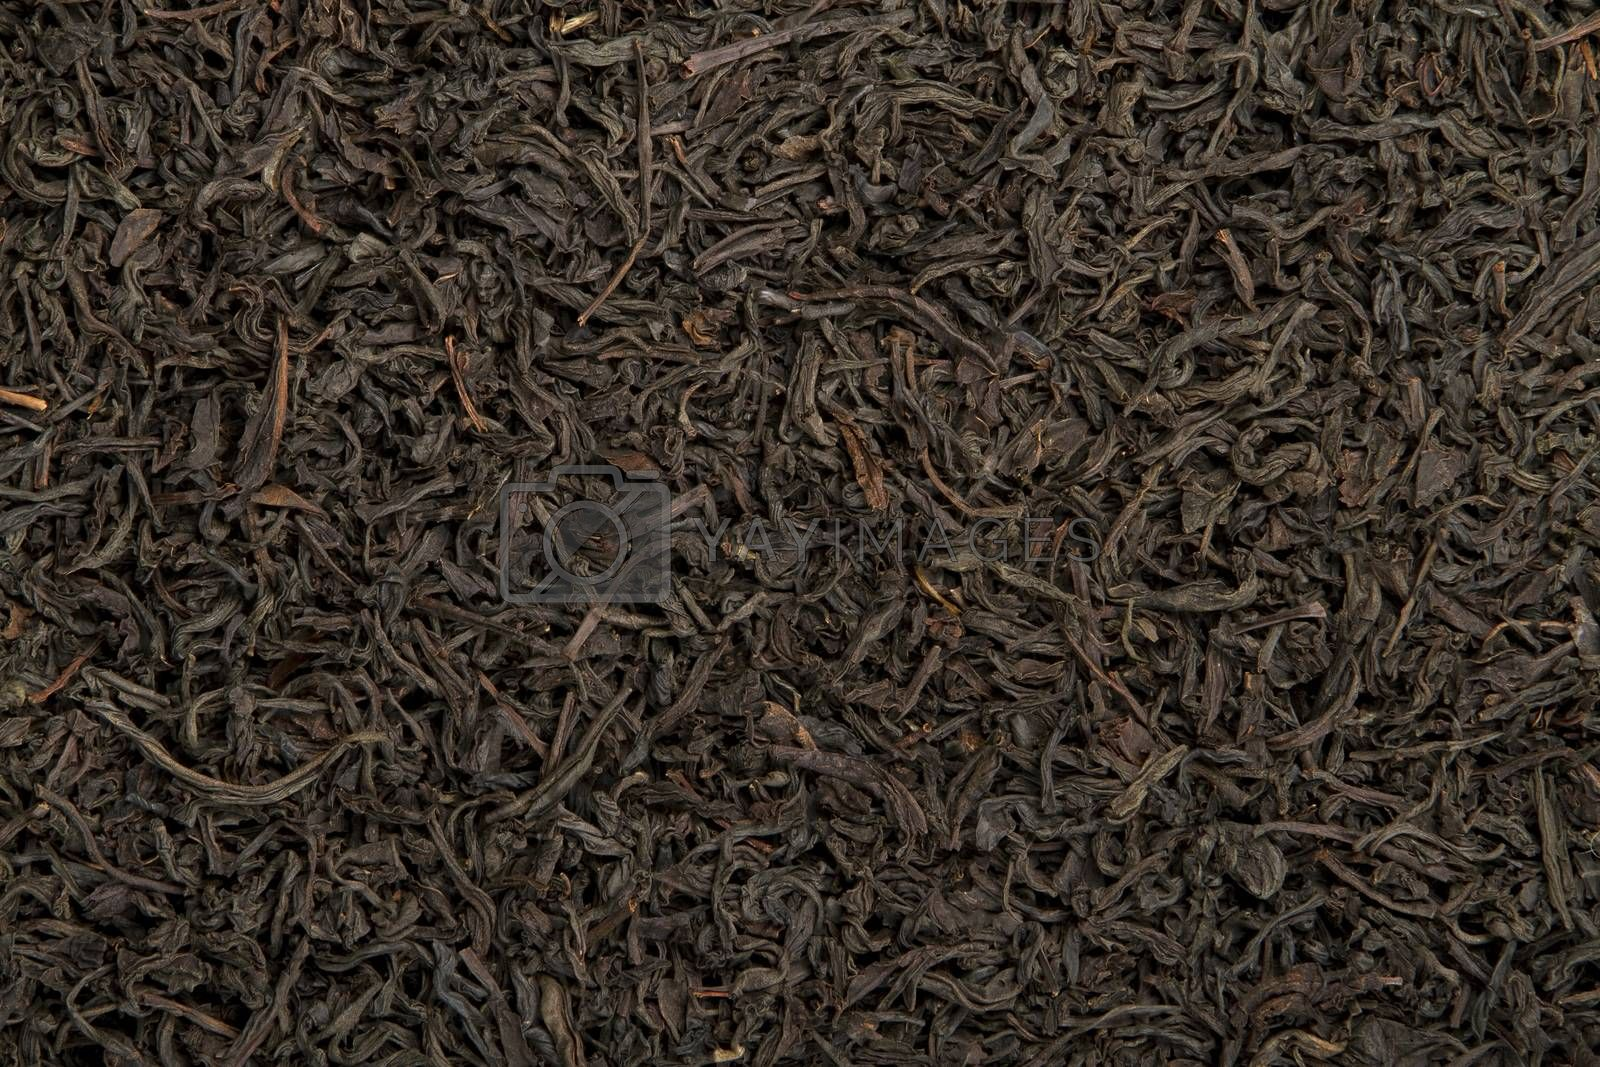 Royalty free image of green tea by phortcach